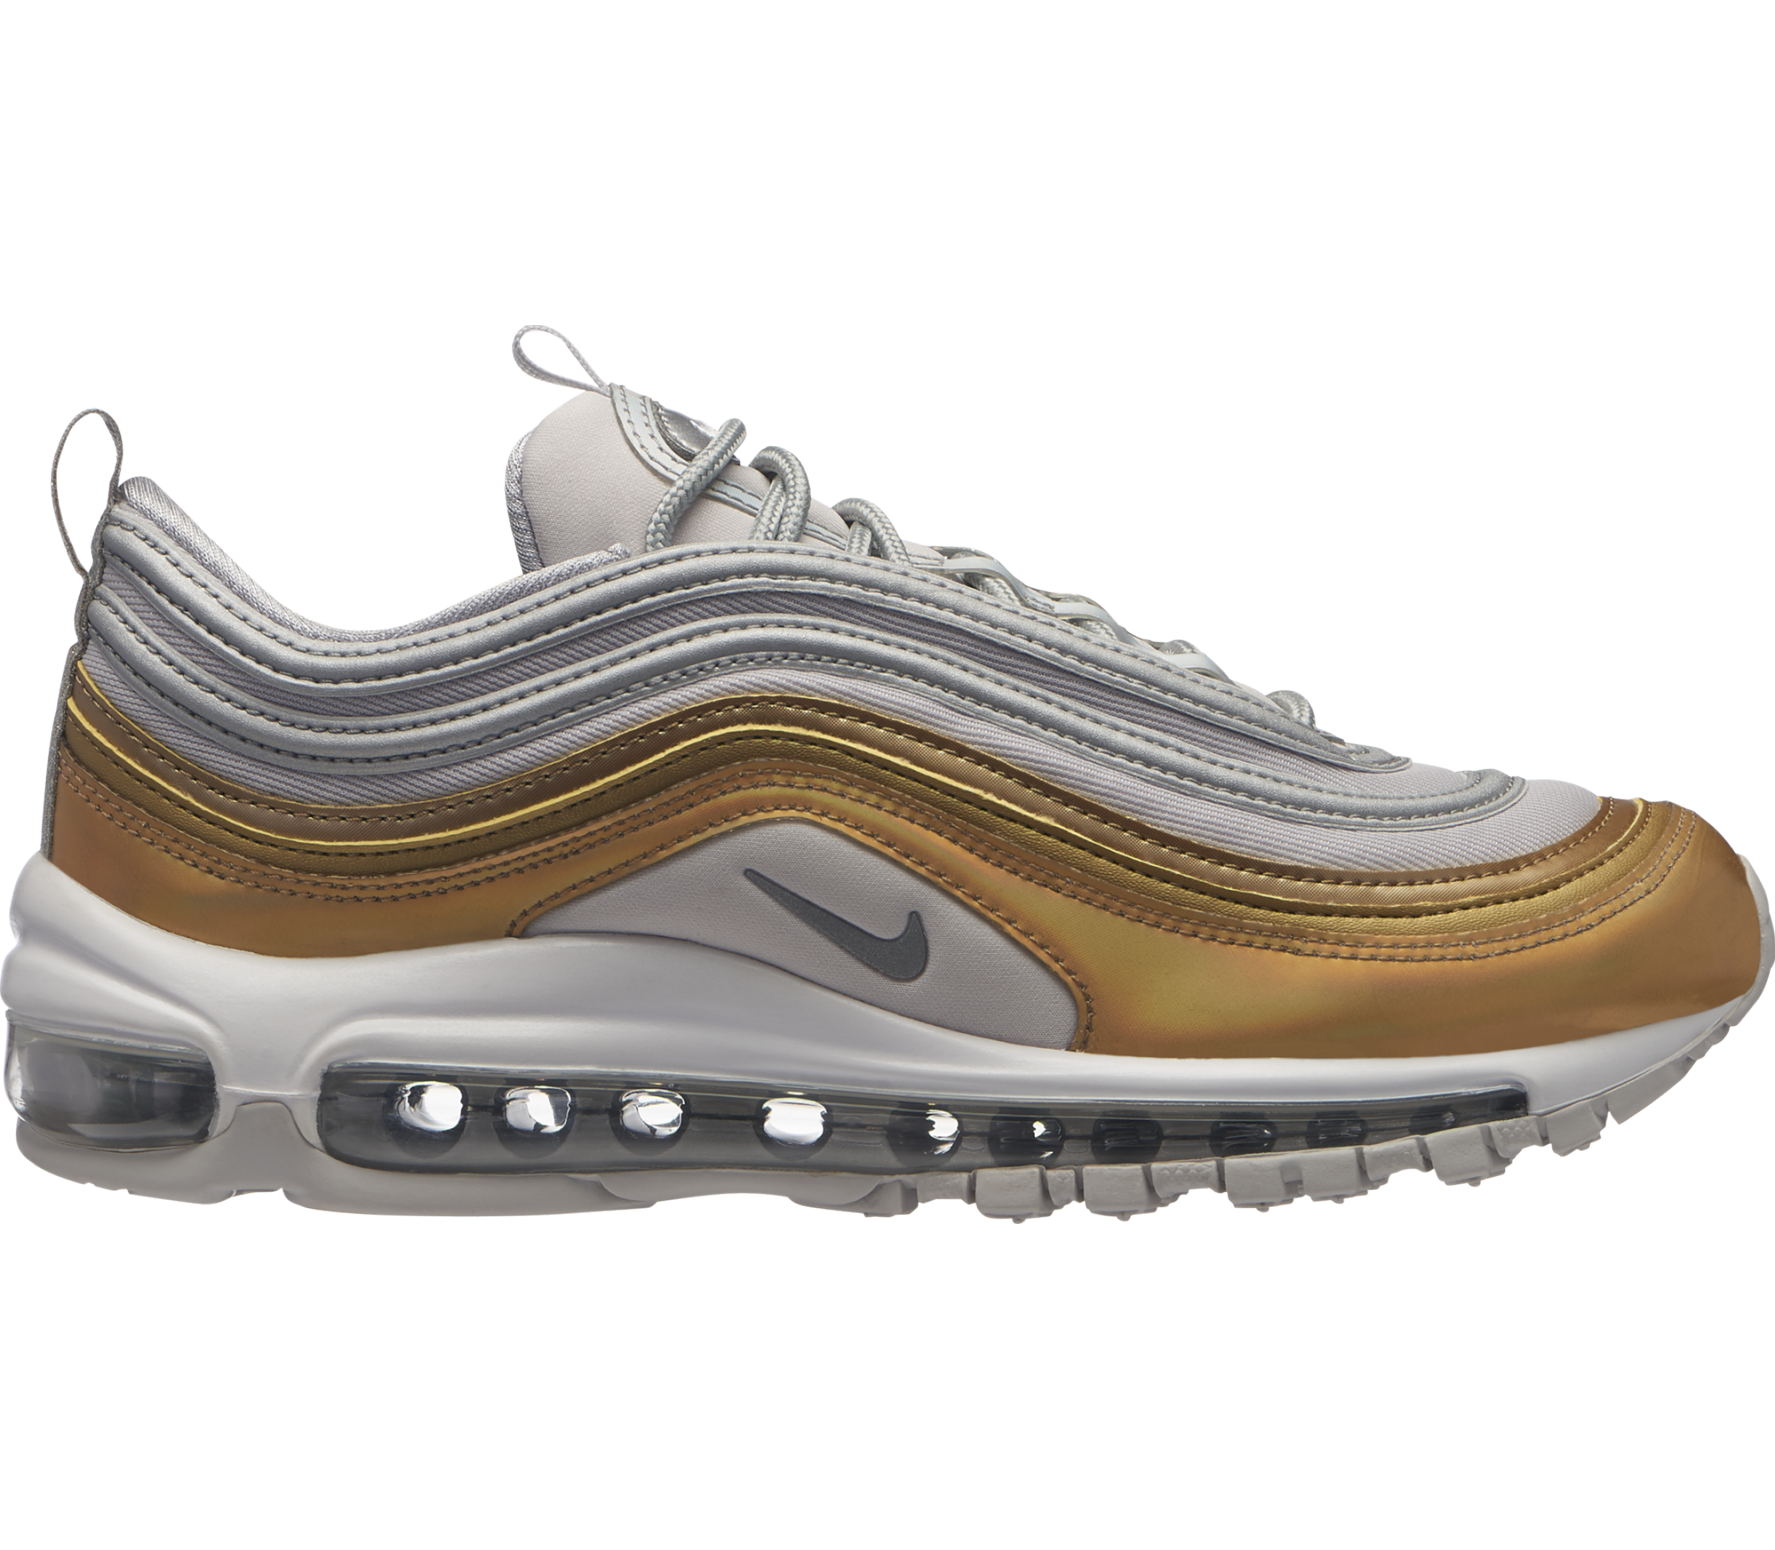 new concept 7952f ee9c9 Nike Sportswear - Air Max 97 Special Edition dames sneakers (witgoud)